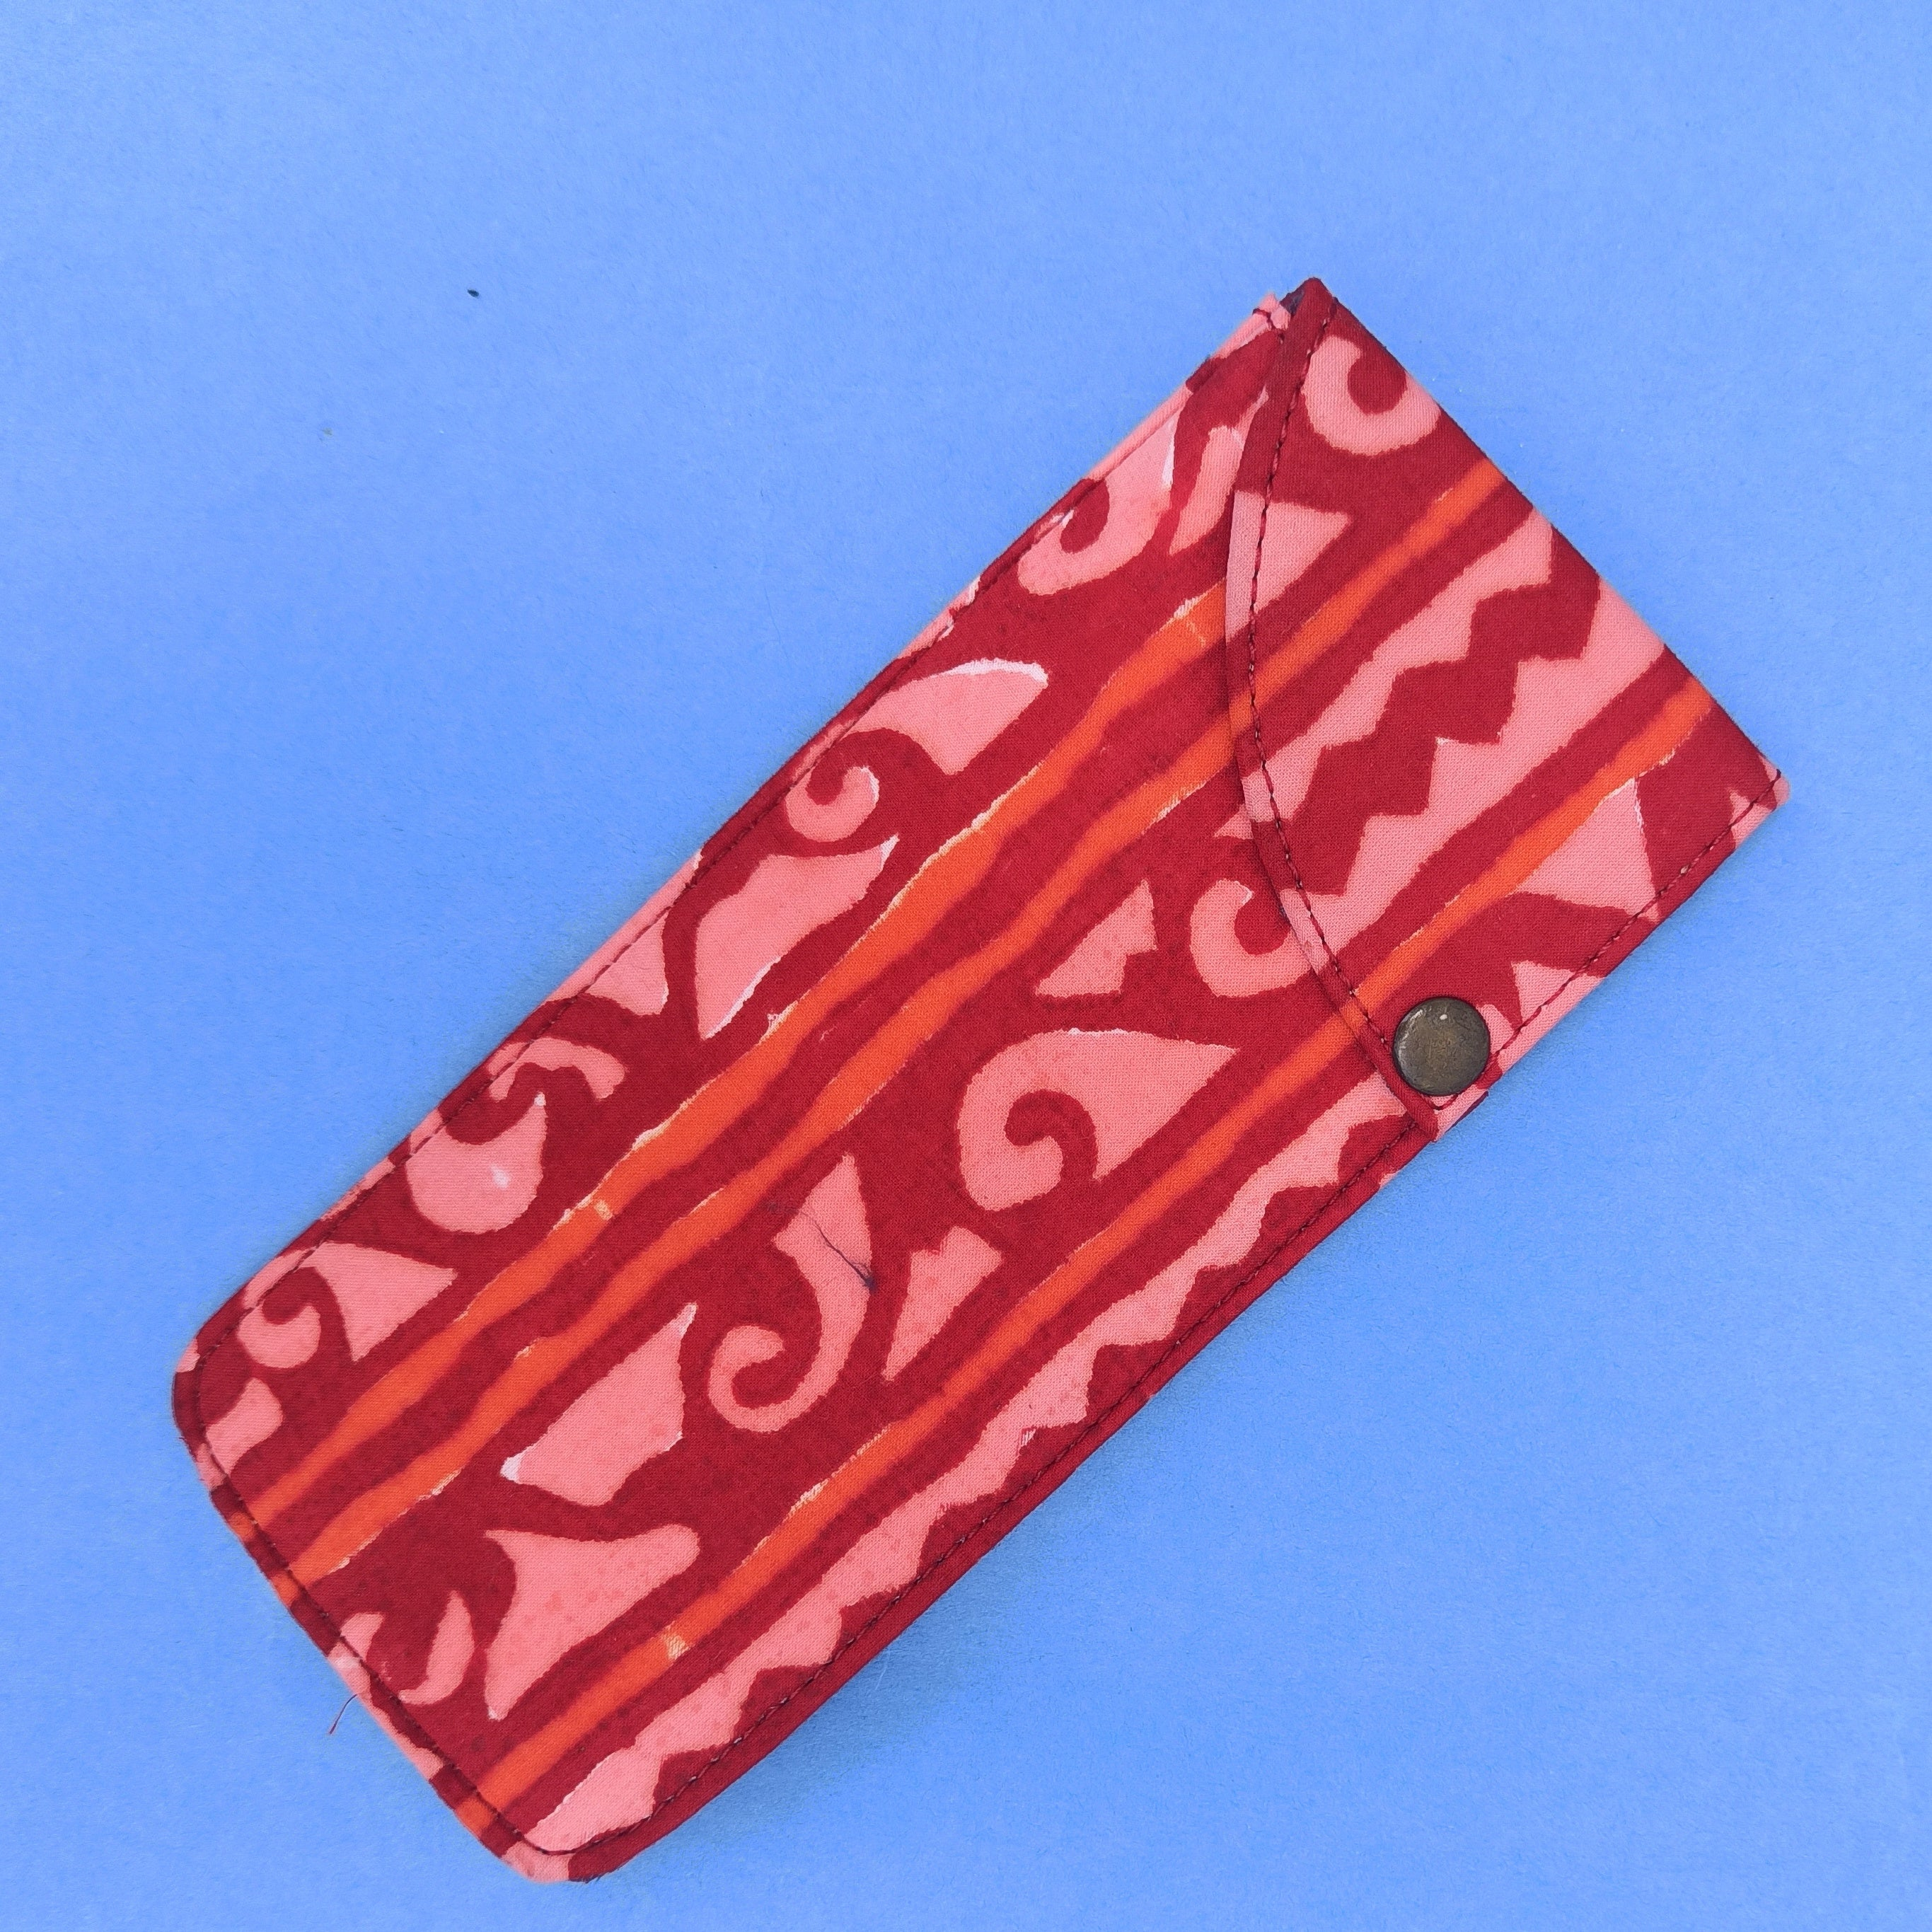 Red multipurpose block printed pouch from Bagru, Rajasthan.